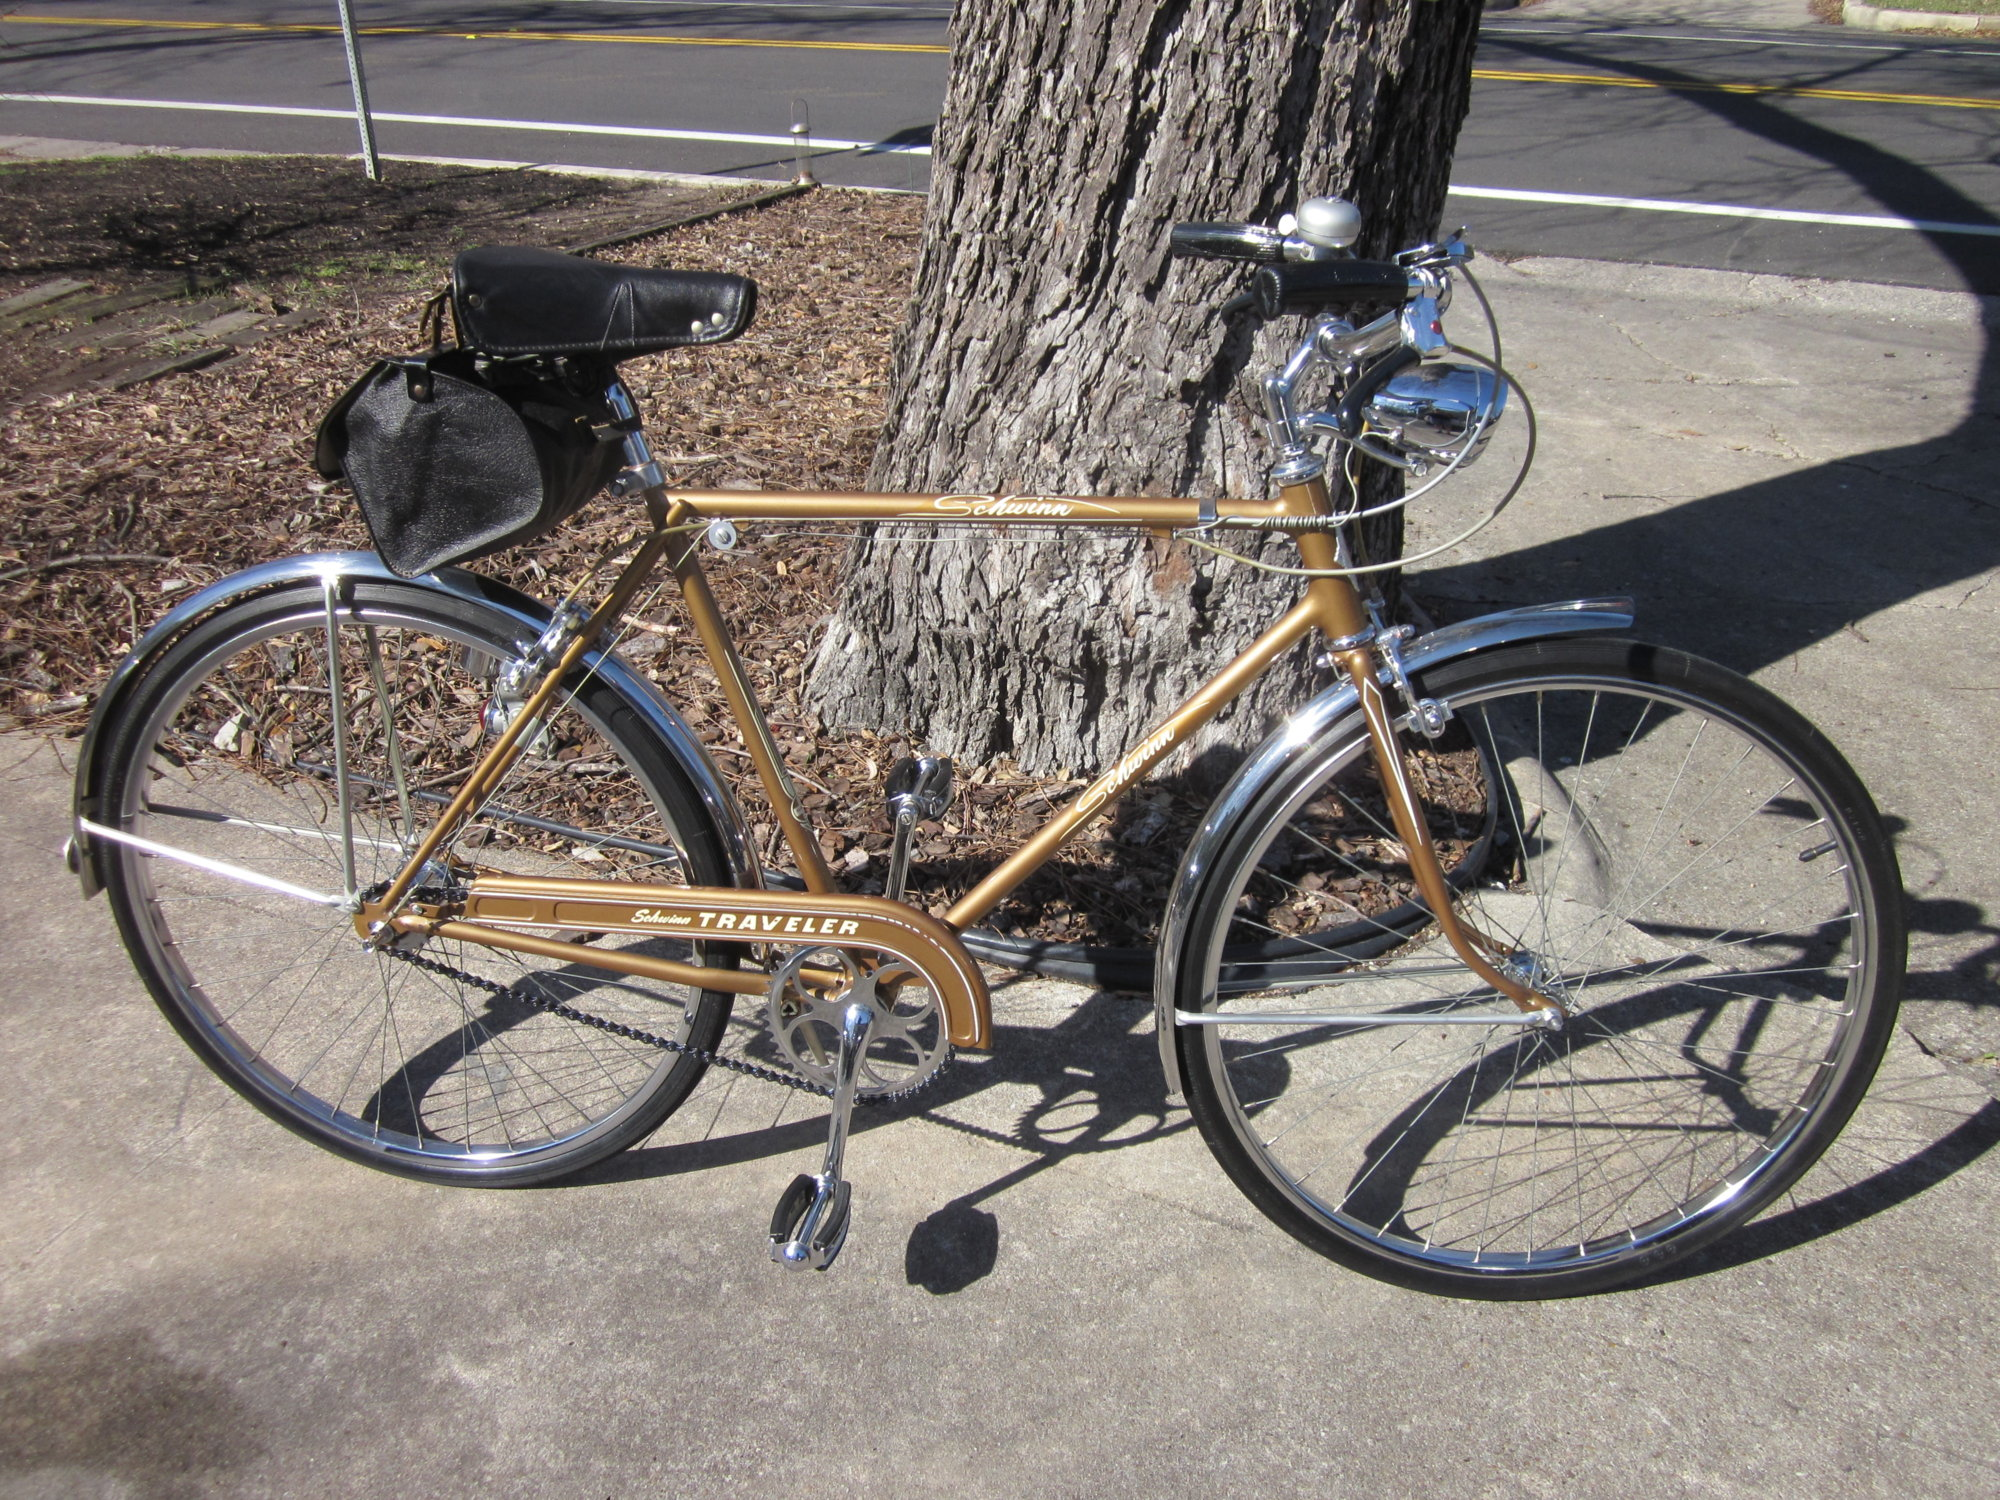 46e7944a220 A friend is trying to learn the name of the color of this beautiful 1957  Schwinn Traveler. Any ideas? Thanks for the help!